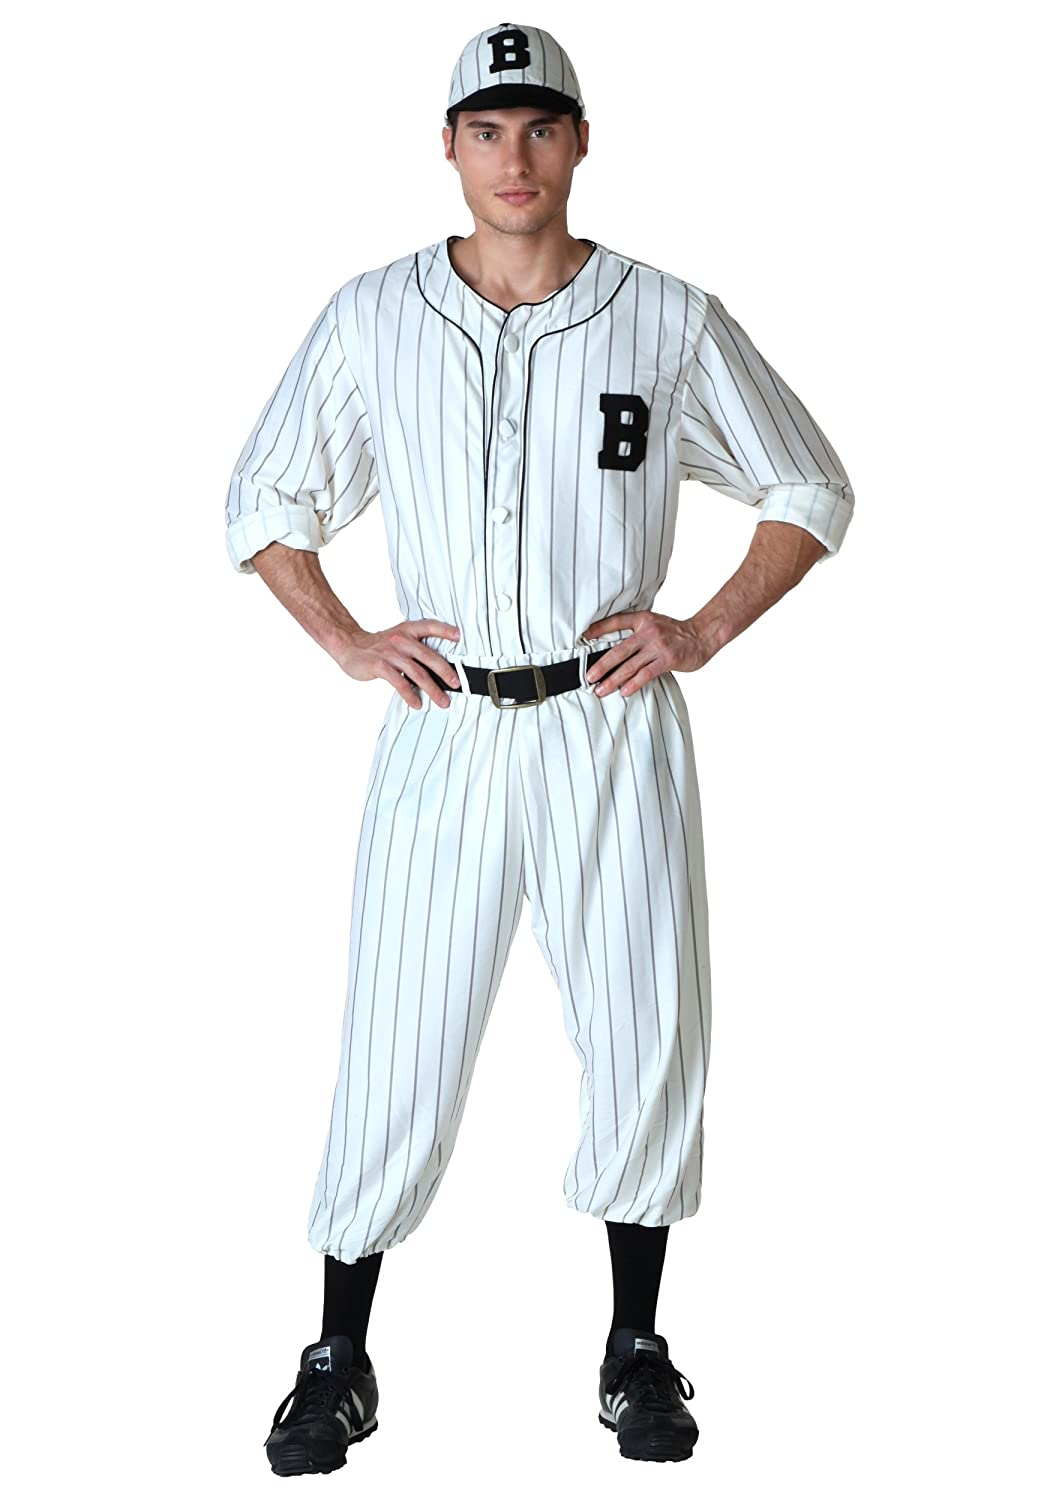 1940s Men's Costumes: WW2, Sailor, Zoot Suits, Gangsters, Detective Adult Vintage Baseball Costume $49.99 AT vintagedancer.com